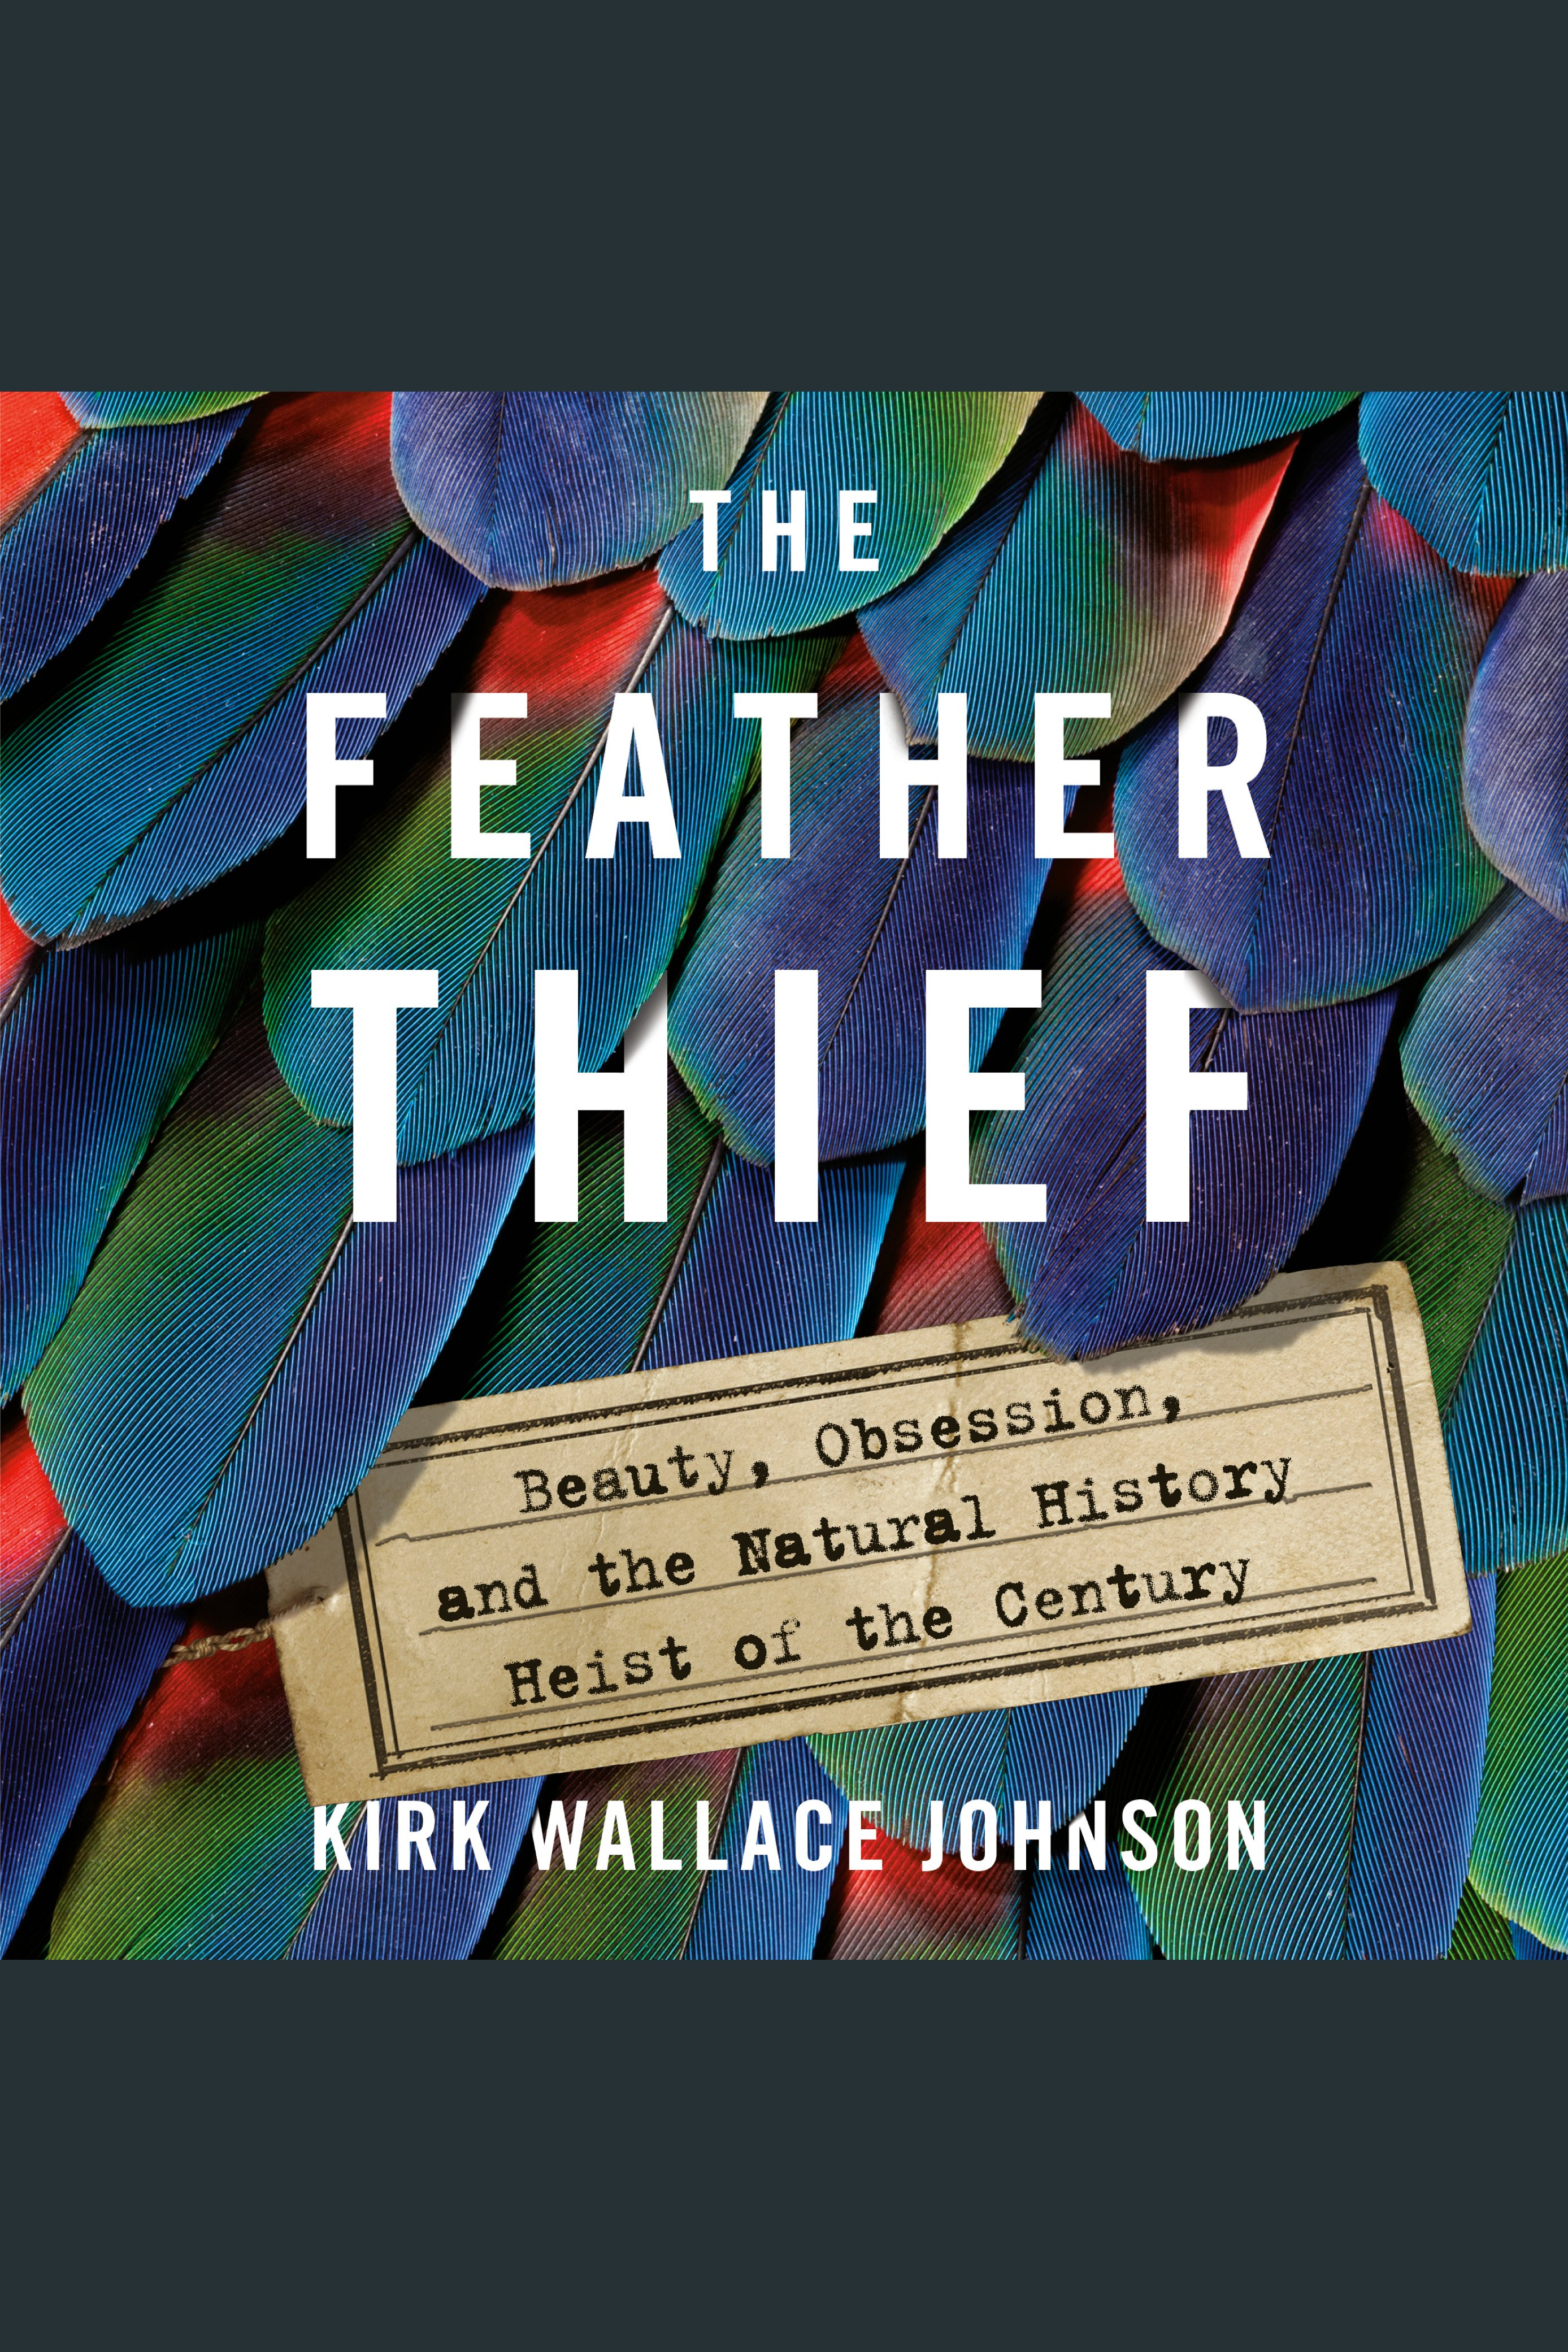 Feather Thief, The [electronic resource] : Beauty, Obsession, and the Natural History Heist of the Century